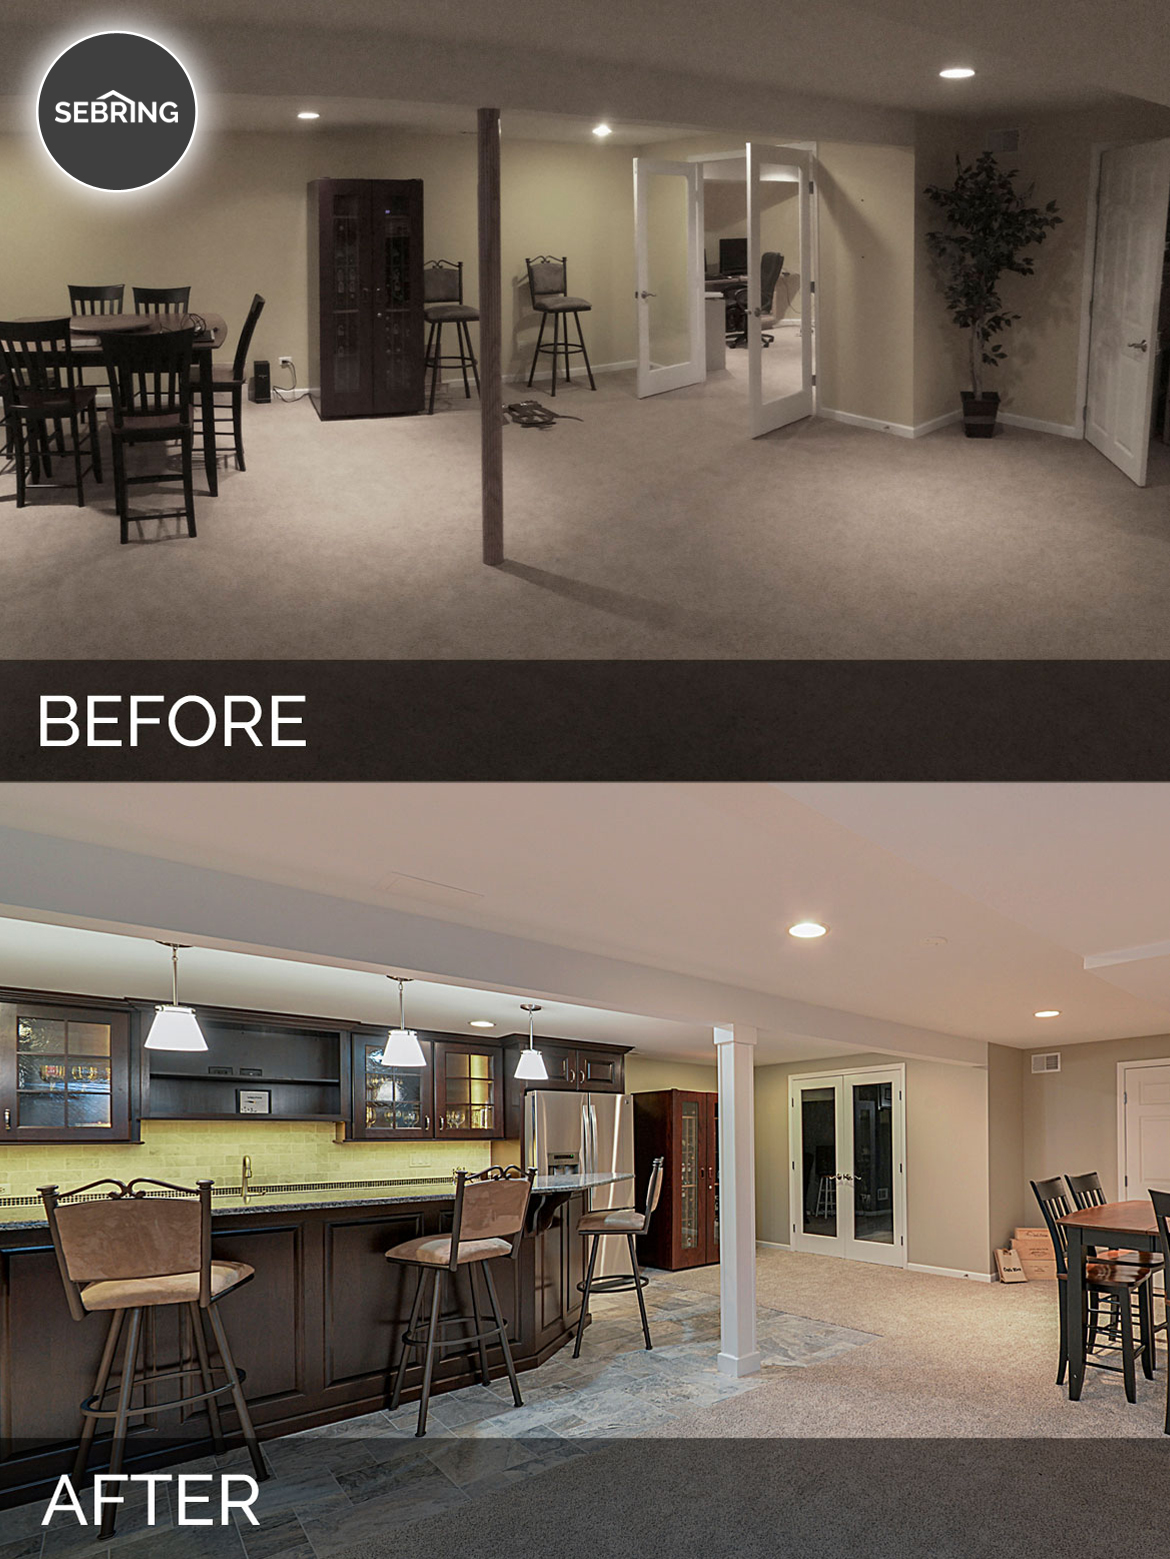 Before And After Diy Kitchen Renovation: Brett & Carolyn's Basement Before & After Pictures